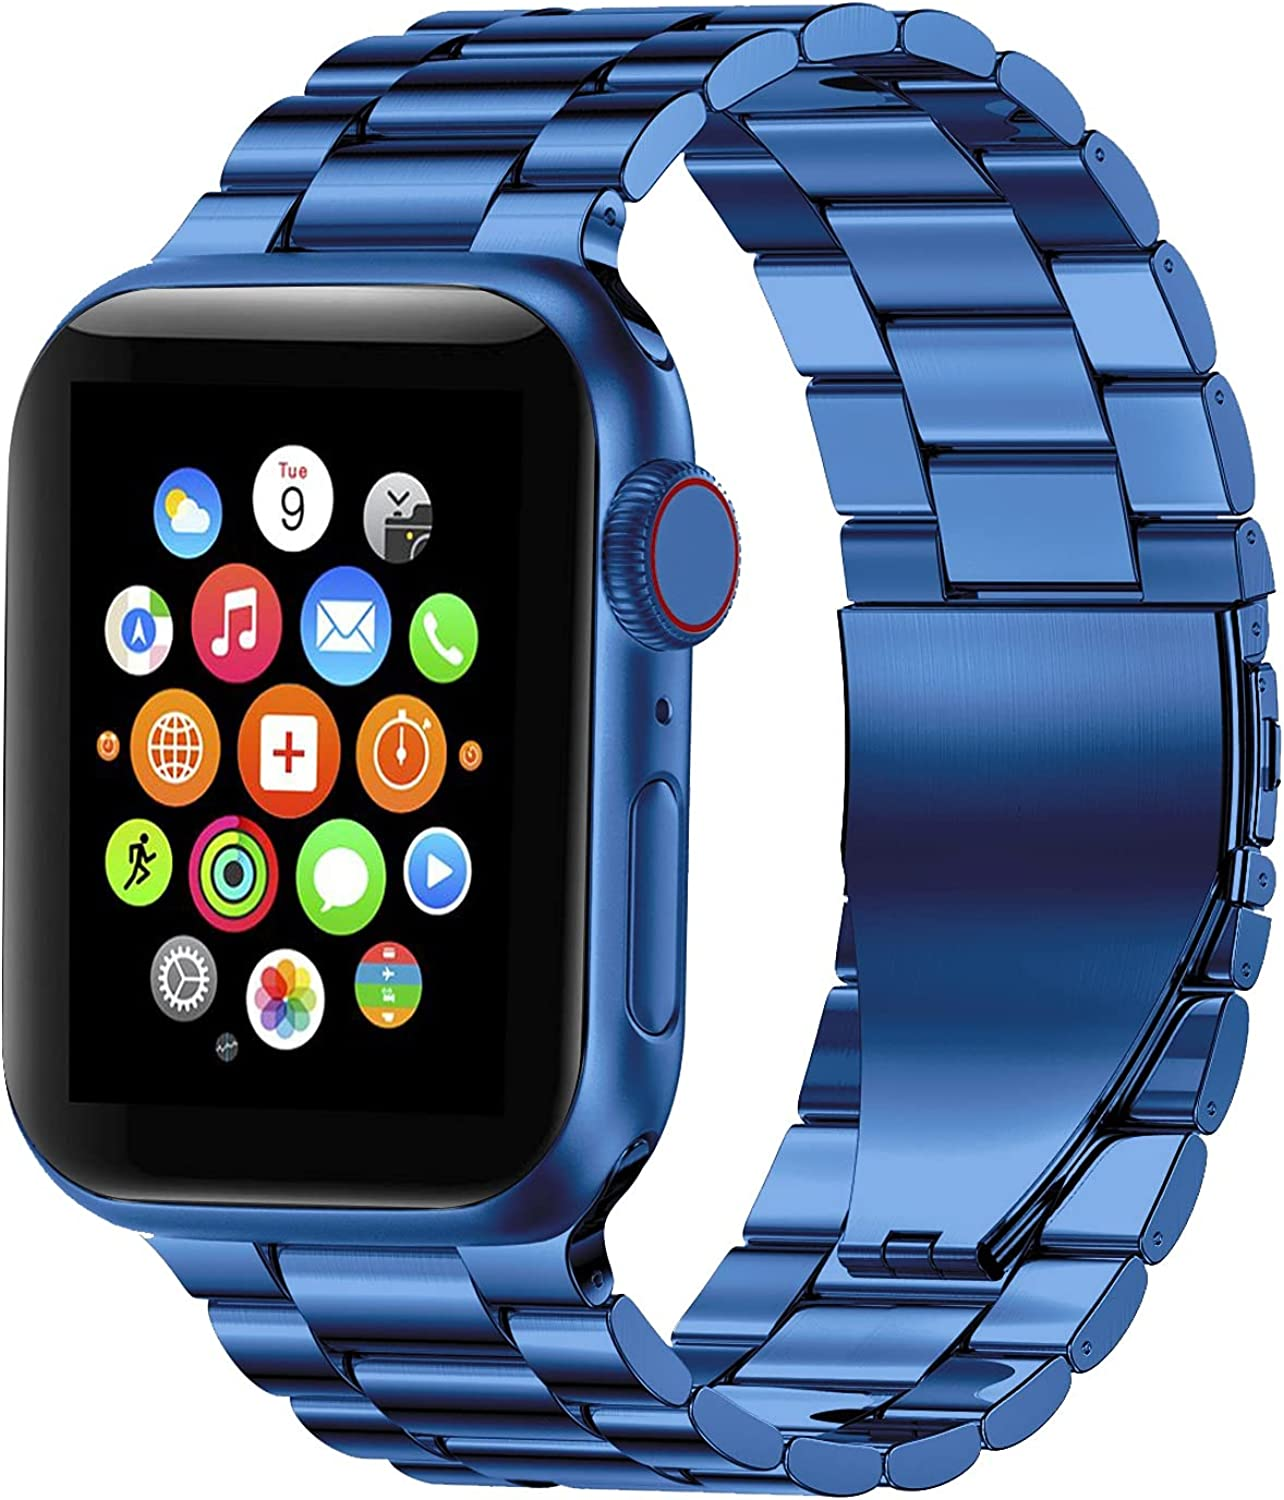 Fitlink Stainless Steel Metal Band for Apple Watch 45/44/42/41/40/38mm, Apple Watch Band Bracelet for Apple Watch Series 7 Apple Watch Series 6 Apple Watch Series 5/4/3/2/1